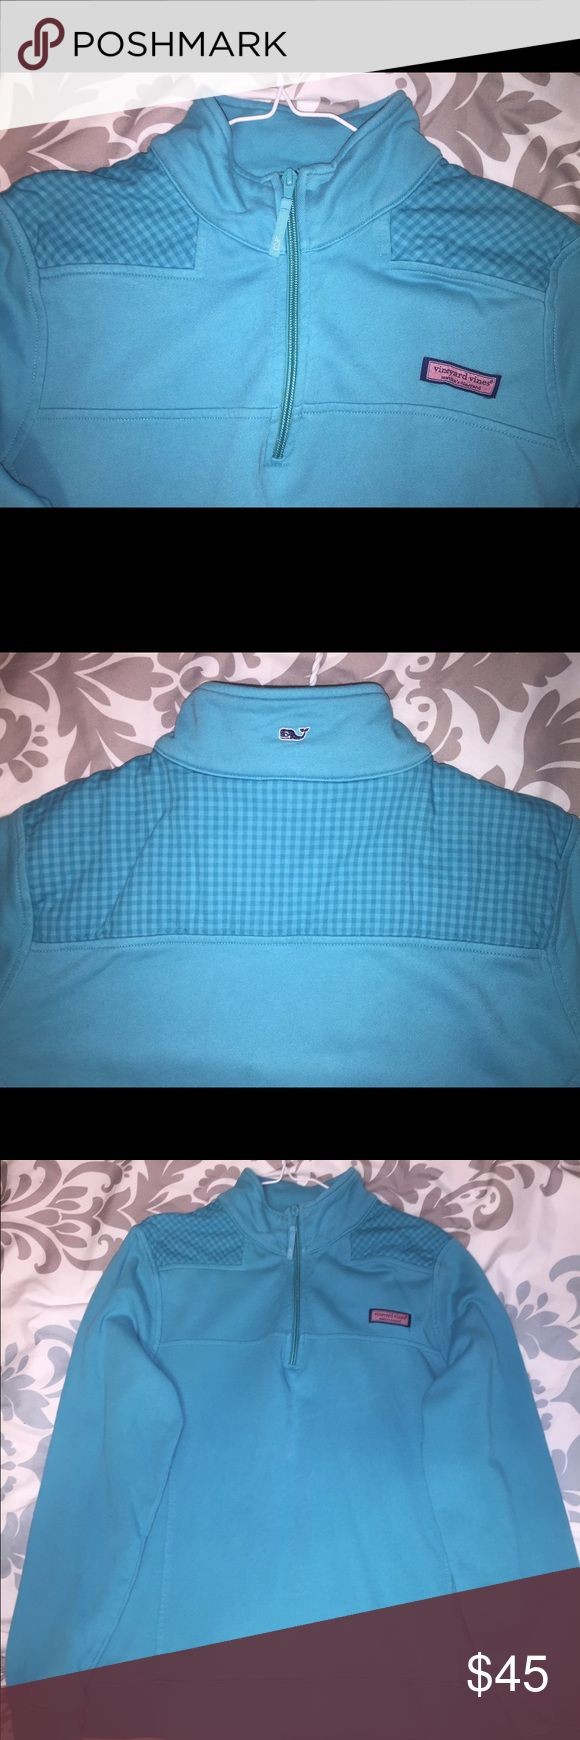 Vineyard Vines blue gingham shepshirt pullover This is a blue Vineyard Vines pullover with a blue gingham panel. It's in great condition but it does have a stain smaller than the size of a pencil eraser on it which I took a picture of. Please let me know if you have any questions! Vineyard Vines Tops Sweatshirts & Hoodies